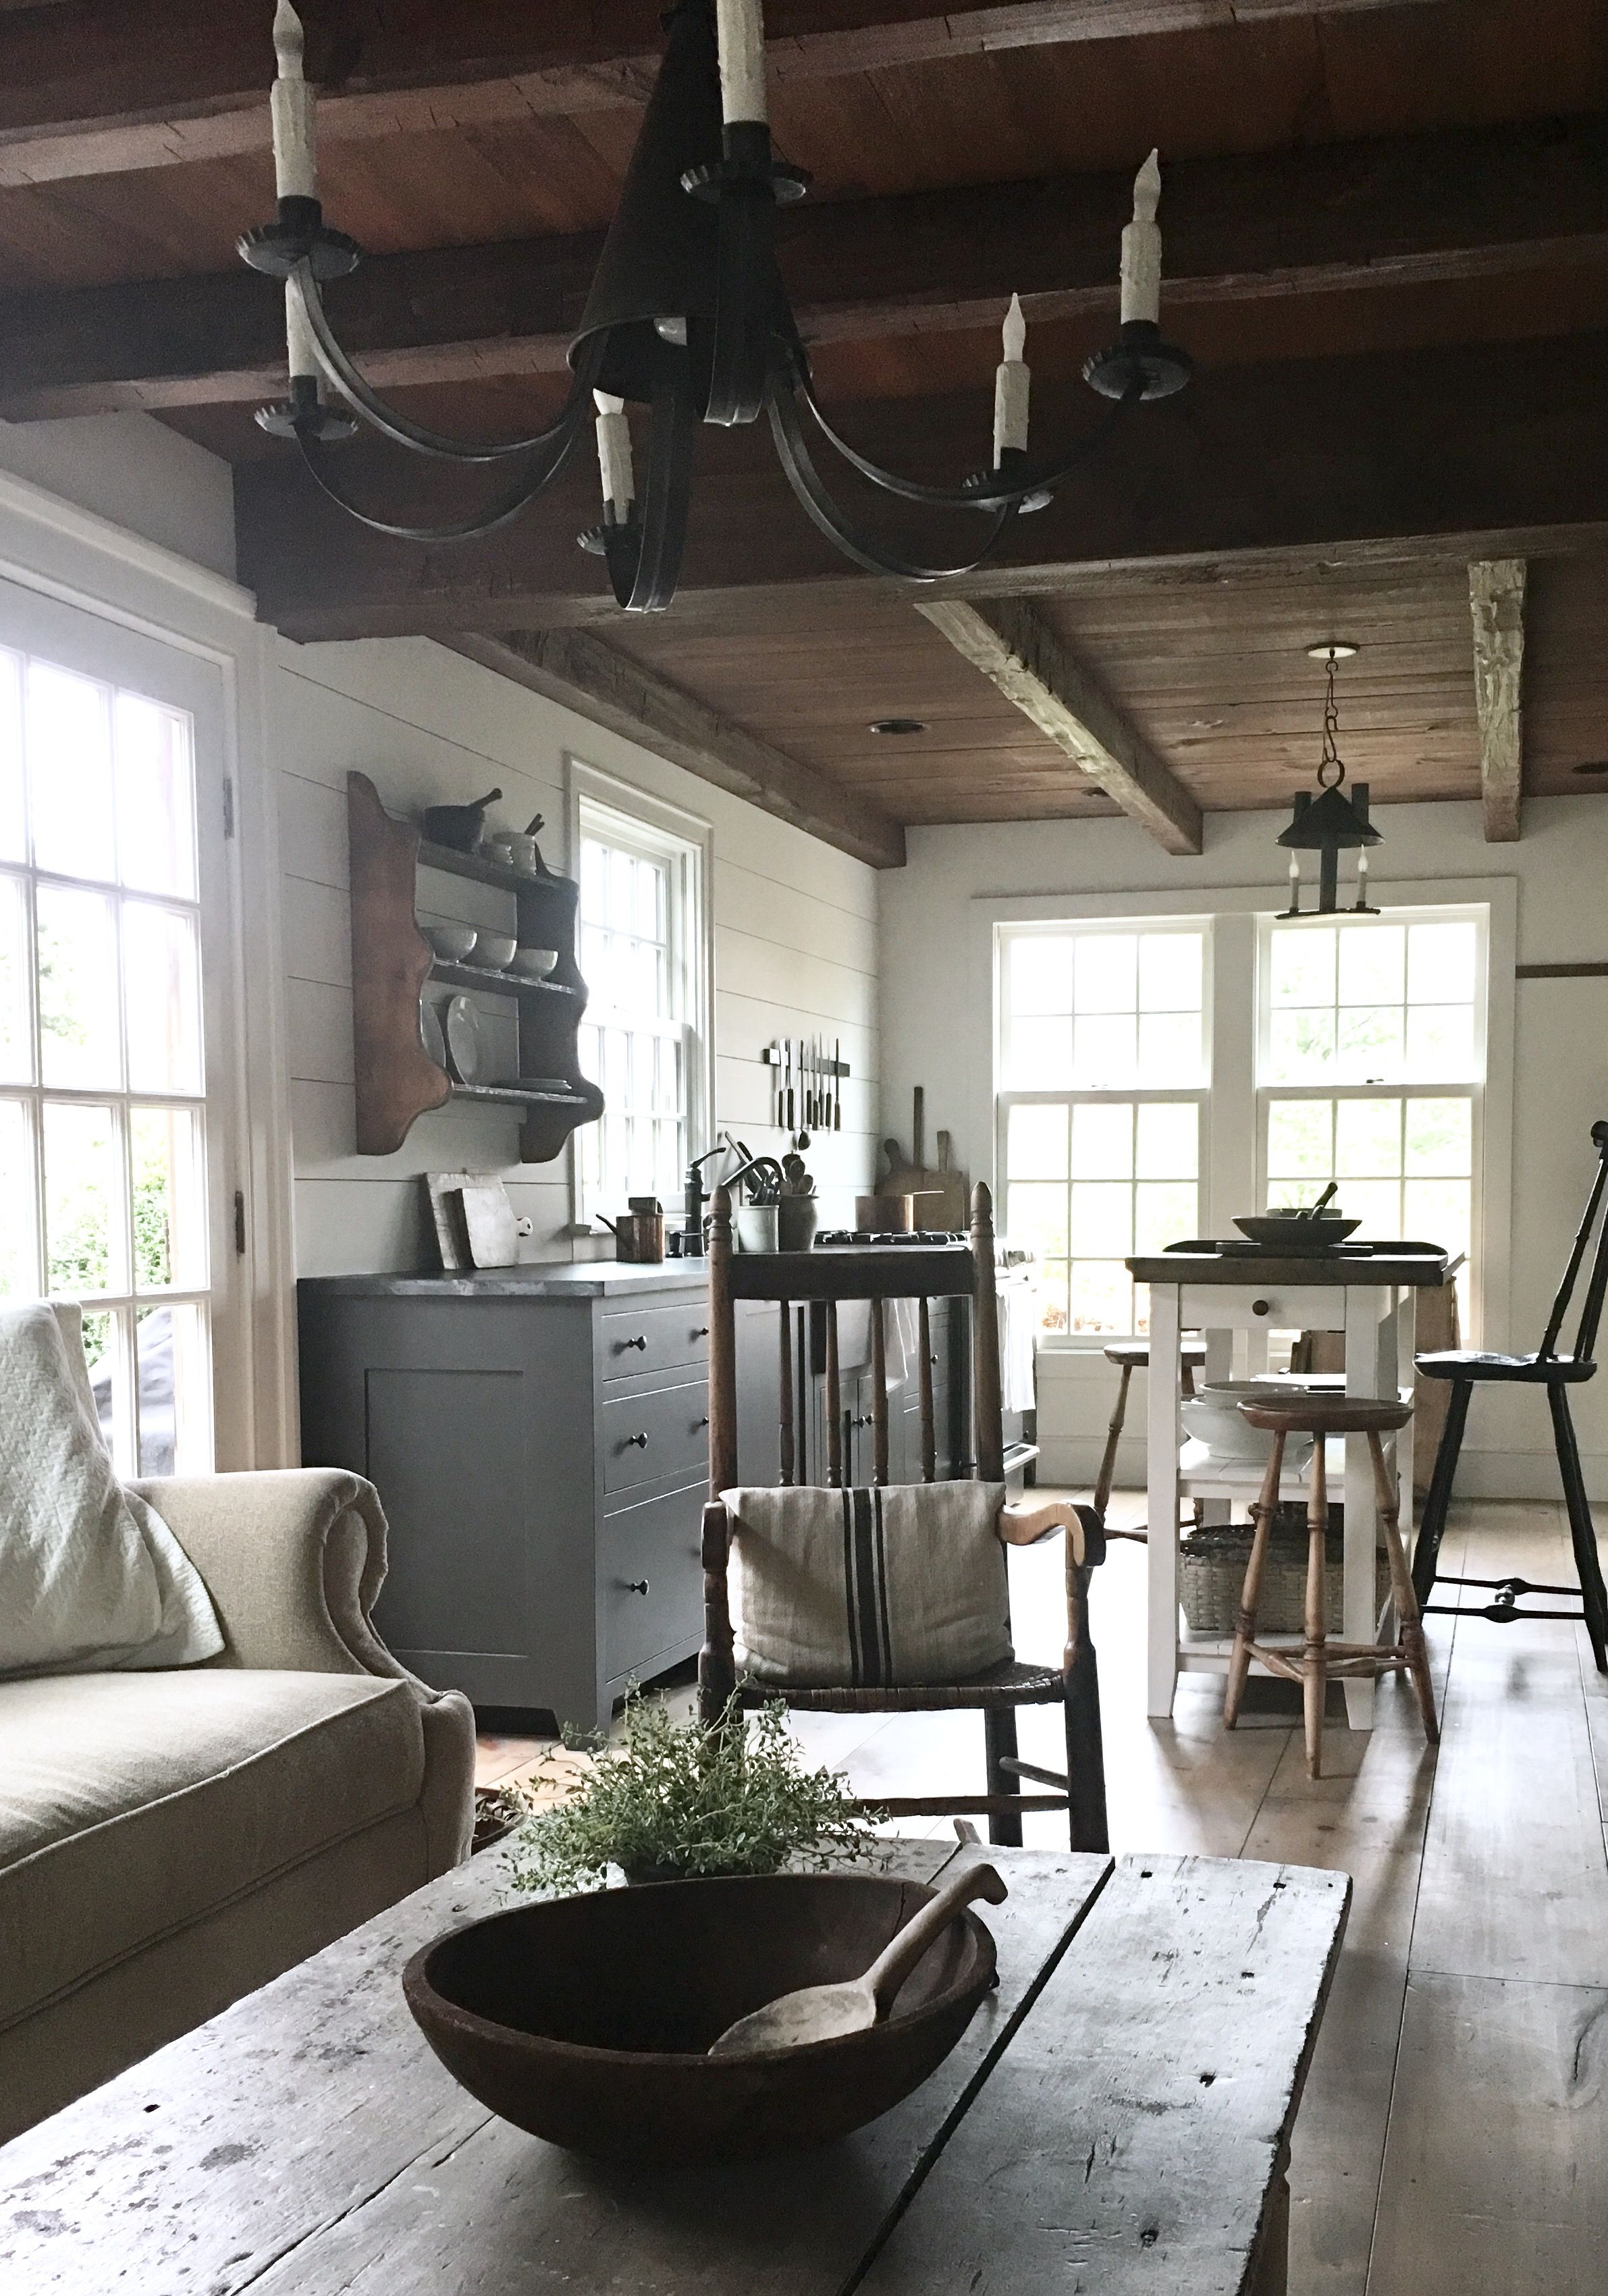 pin by phoebe on my home farmhouse kitchen interior inside home house interior on kitchen interior farmhouse id=73614